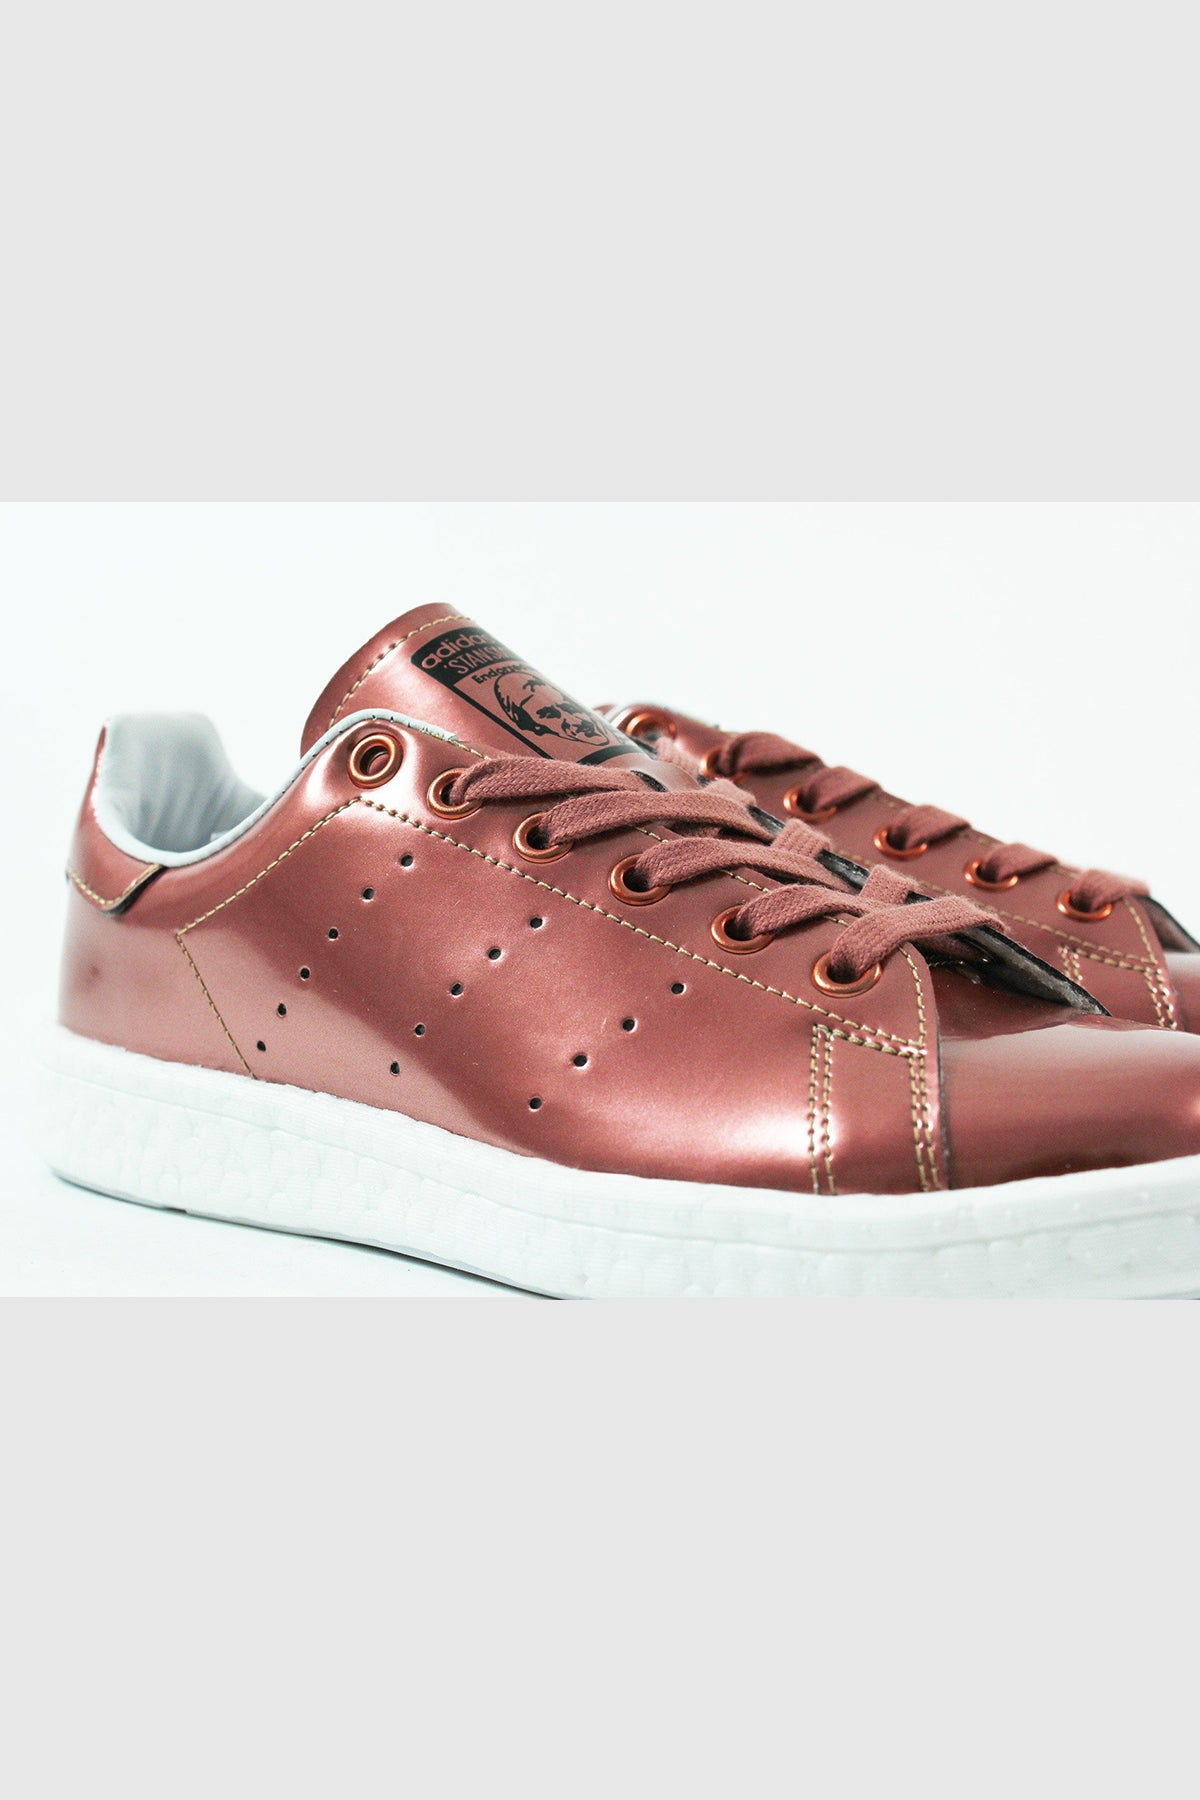 official store new appearance large discount Adidas - Stan Smith Boost Women (Copper Metallic/ White ...